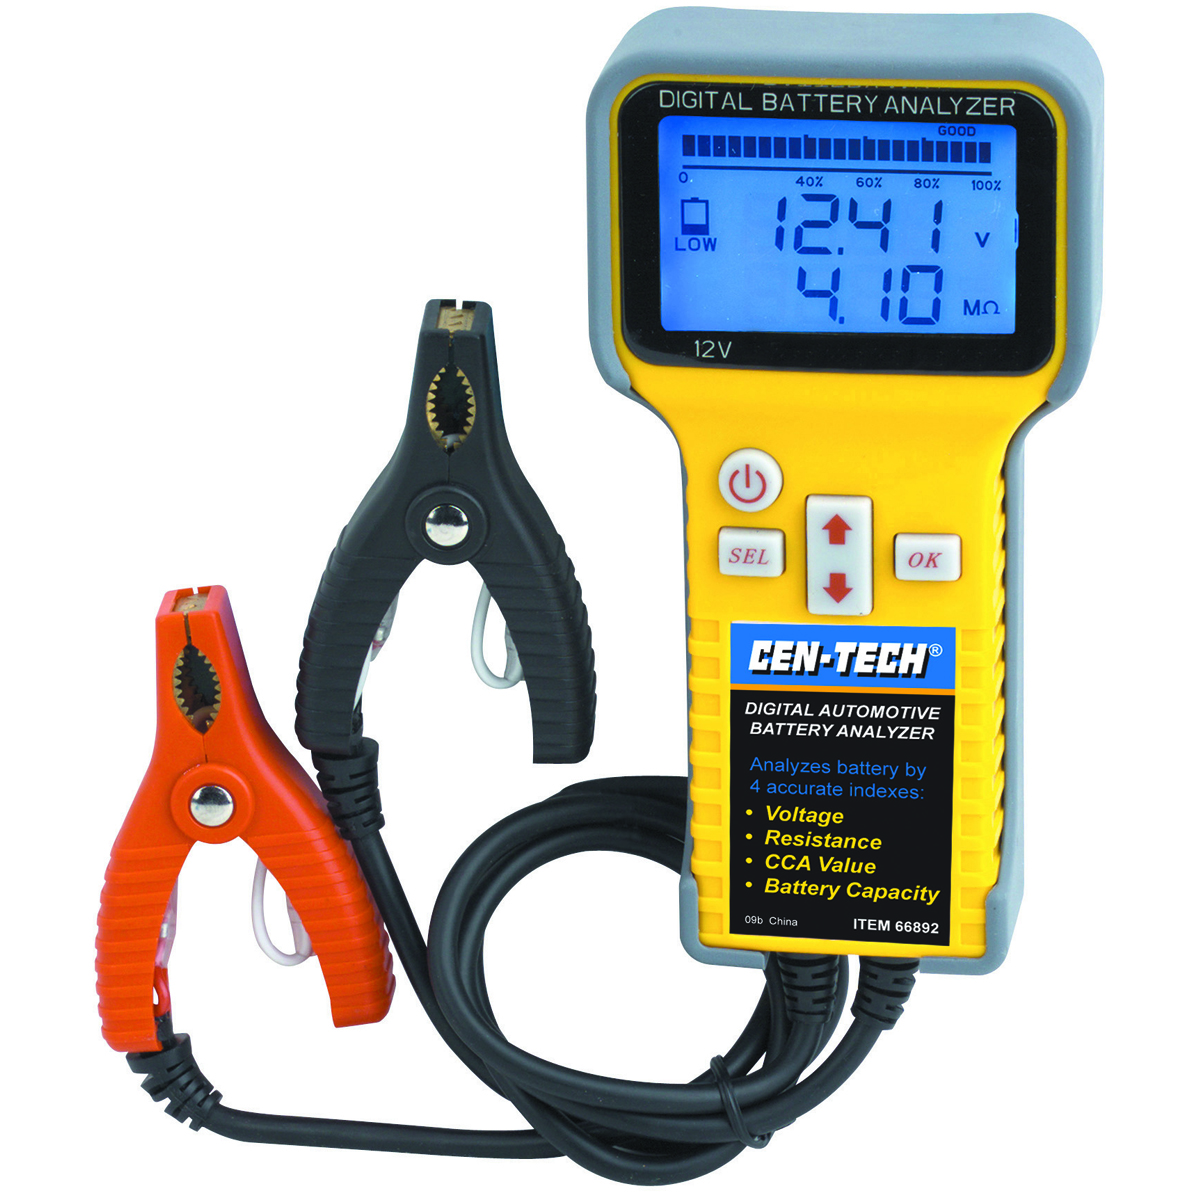 Electronic Battery Tester : Digital automotive battery analyzer